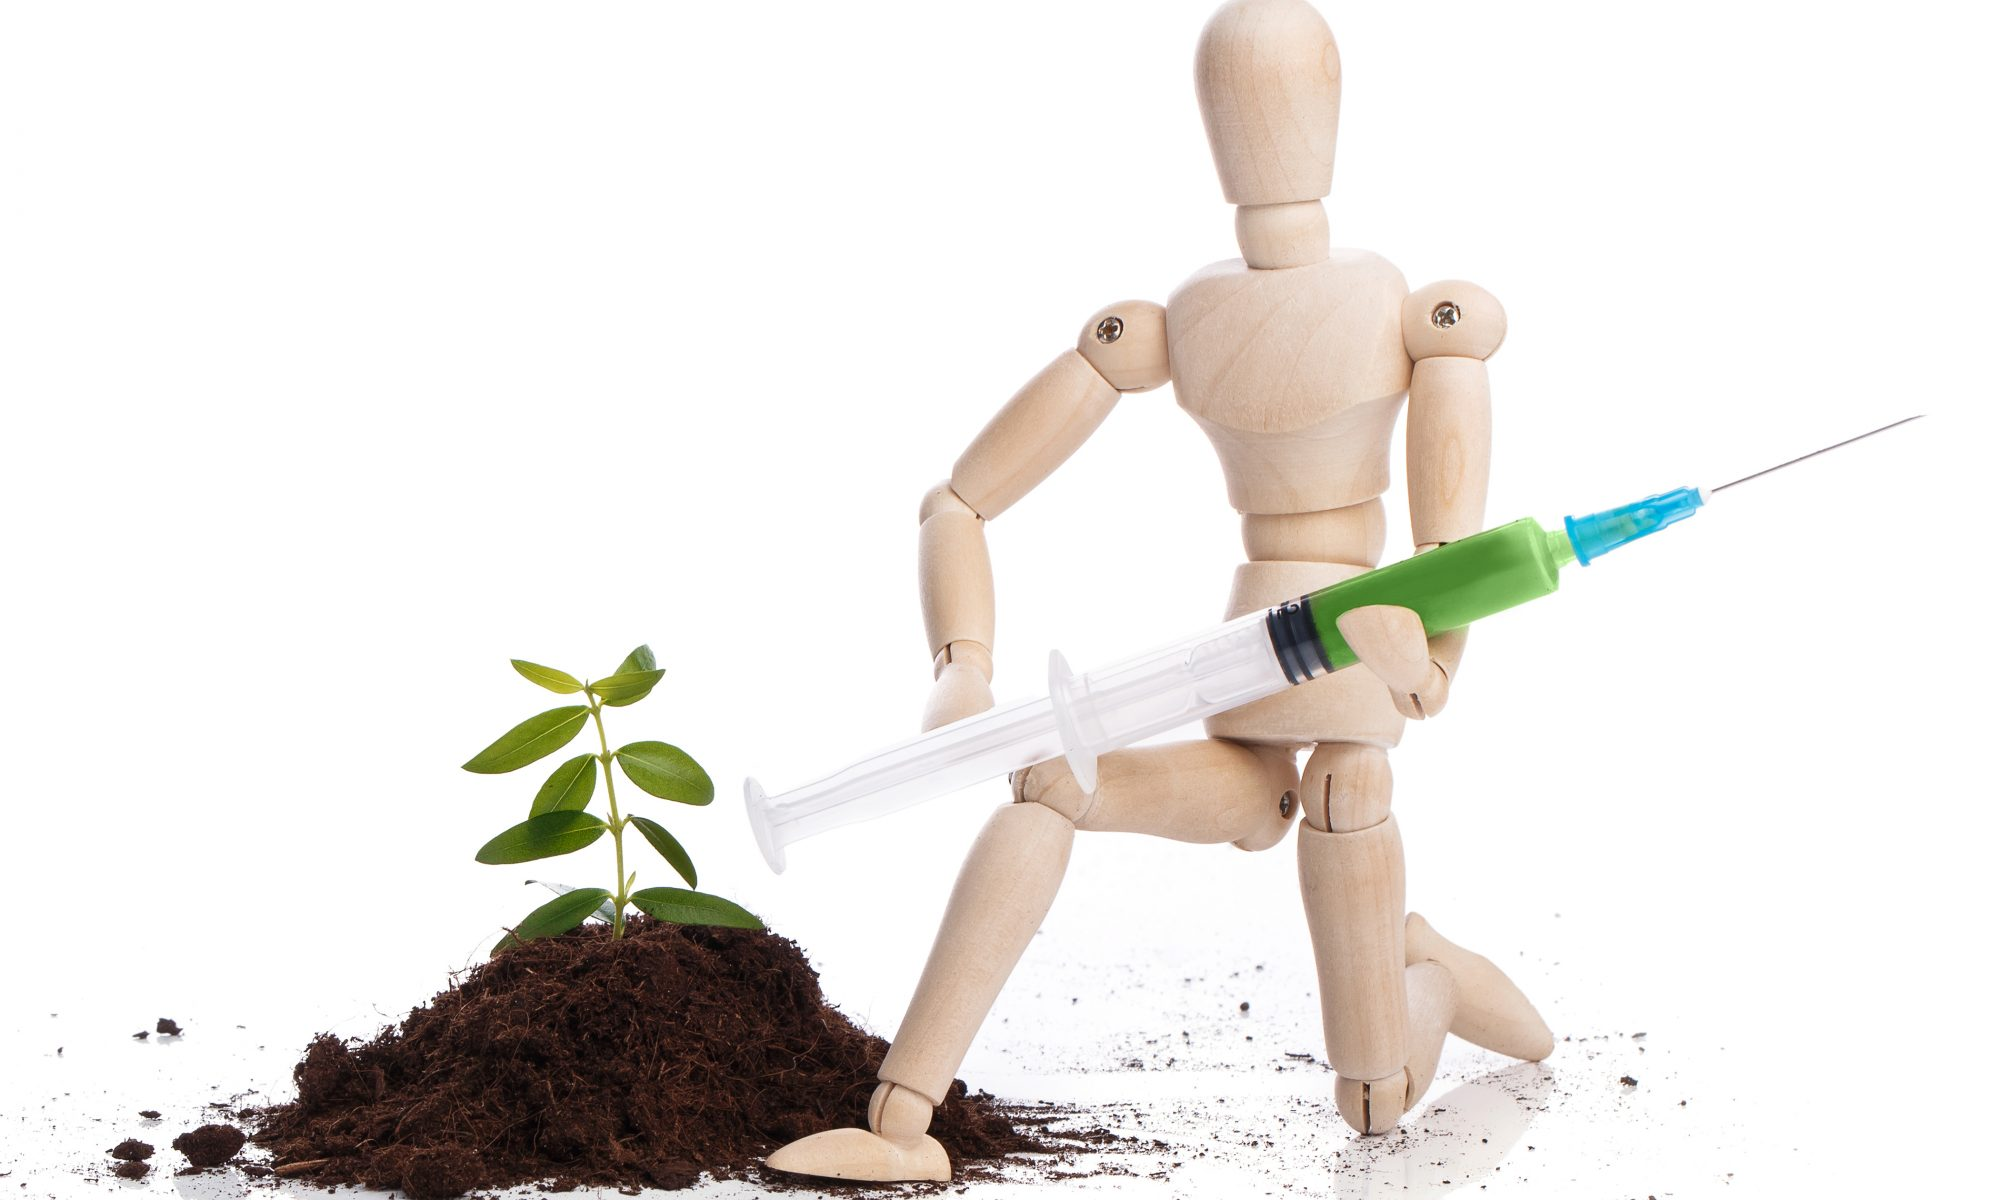 tree treatment using injection